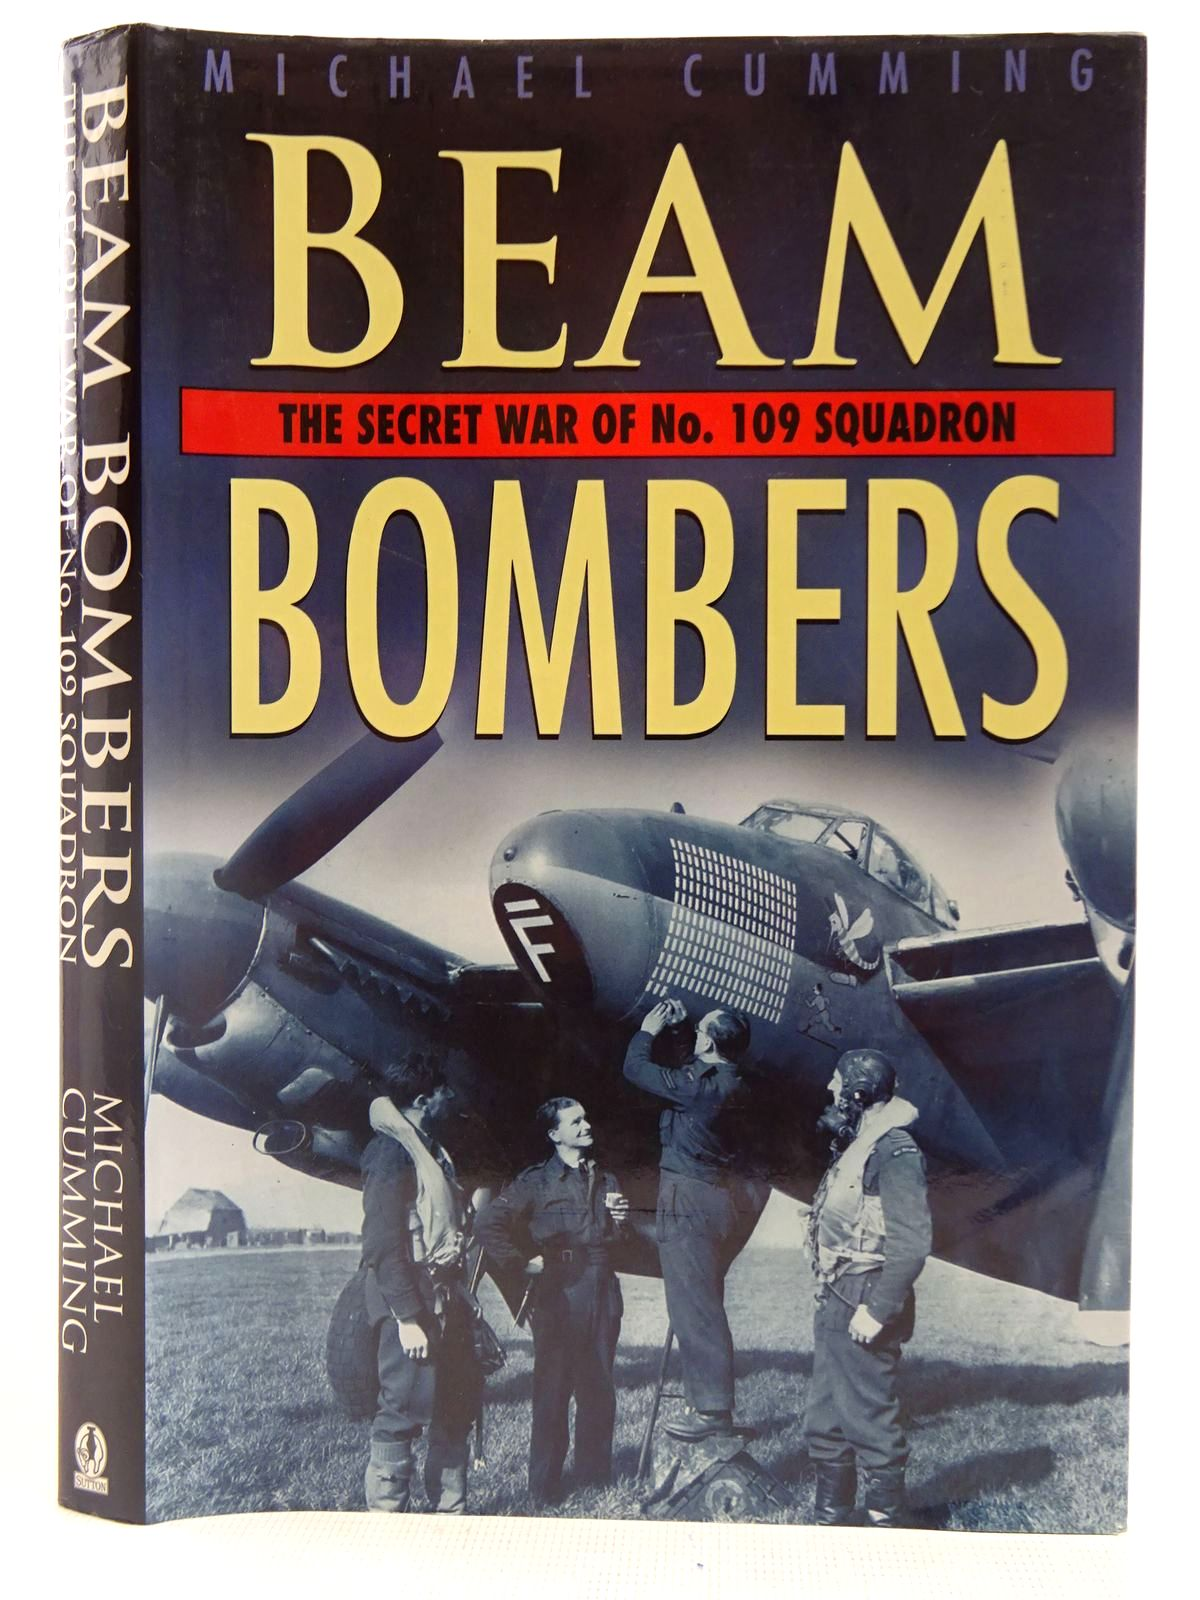 Photo of BEAM BOMBERS THE SECRET WAR OF No. 109 SQUADRON written by Cumming, Michael published by Sutton Publishing (STOCK CODE: 2127473)  for sale by Stella & Rose's Books